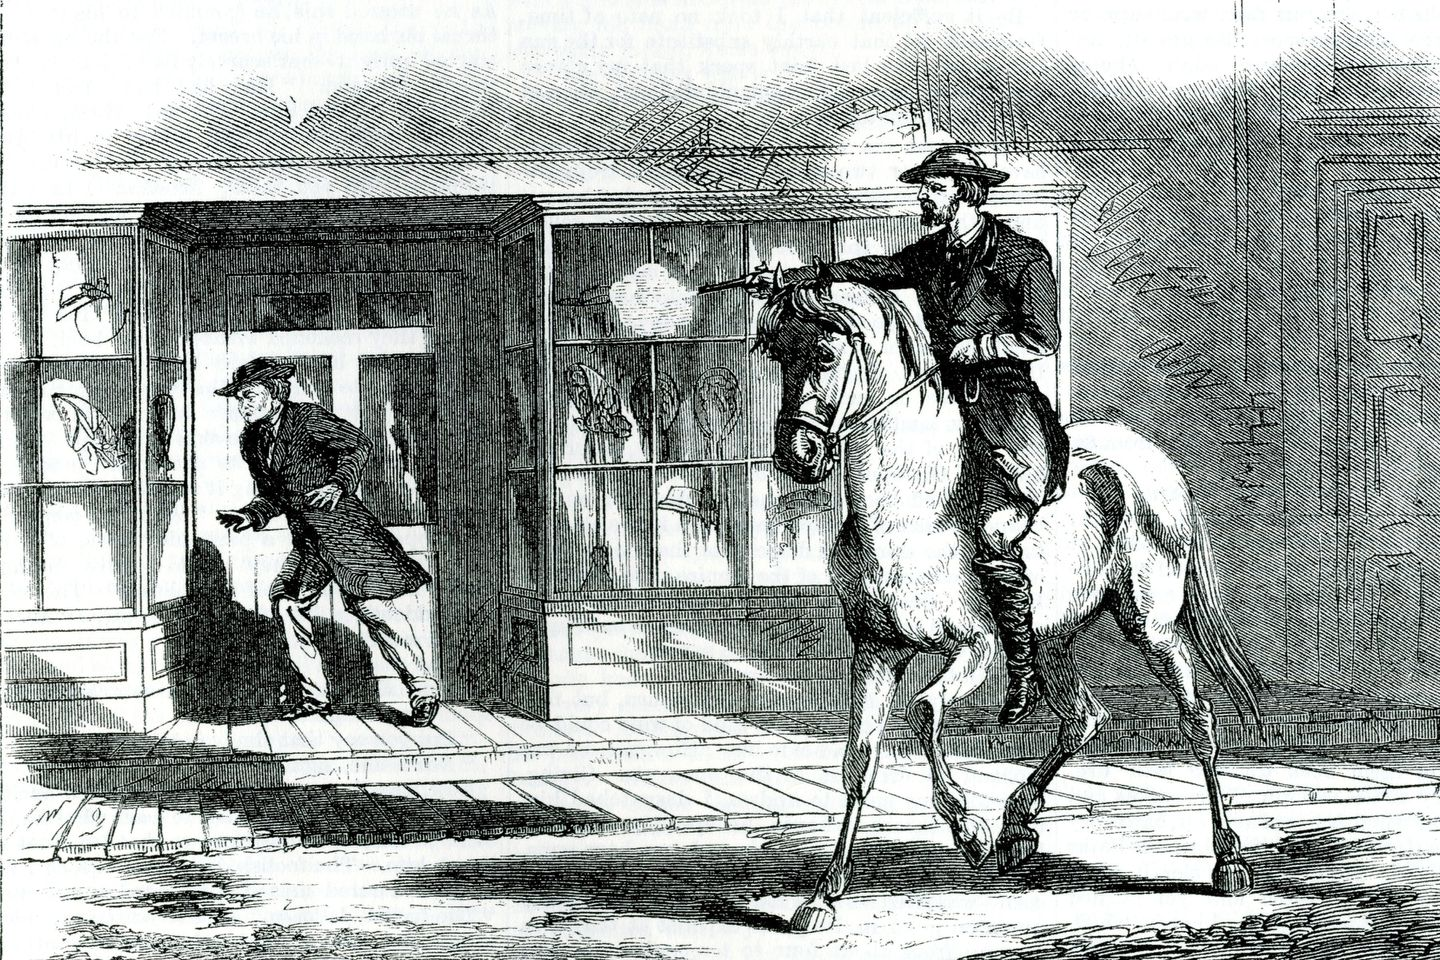 An old editorial illustration depicts Elinus Morrison               being shot outside Miss Beattie�s Millinery Store by               either Lt. Bennett Young or fellow raider Almanda Pope               Bruce. The building is across from St. Albans City Hall.               Morrison, 55, a contractor from Manchester, N.H., was in               town on a construction project at the Welden House at the               corner of Bank Street and Maiden Lane, just behind the               building where he was shot. Morrison died two days later,               the only known fatality of the raid. Coincidentally it was               said of Morrison that he was �the only southern               sympathizer in town.� He left a widow and five children               and was buried in his hometown.               CREDIT: VERMONT HISTORICAL SOCIETY (these images               originally appeared in Frank Leslie's magazine)